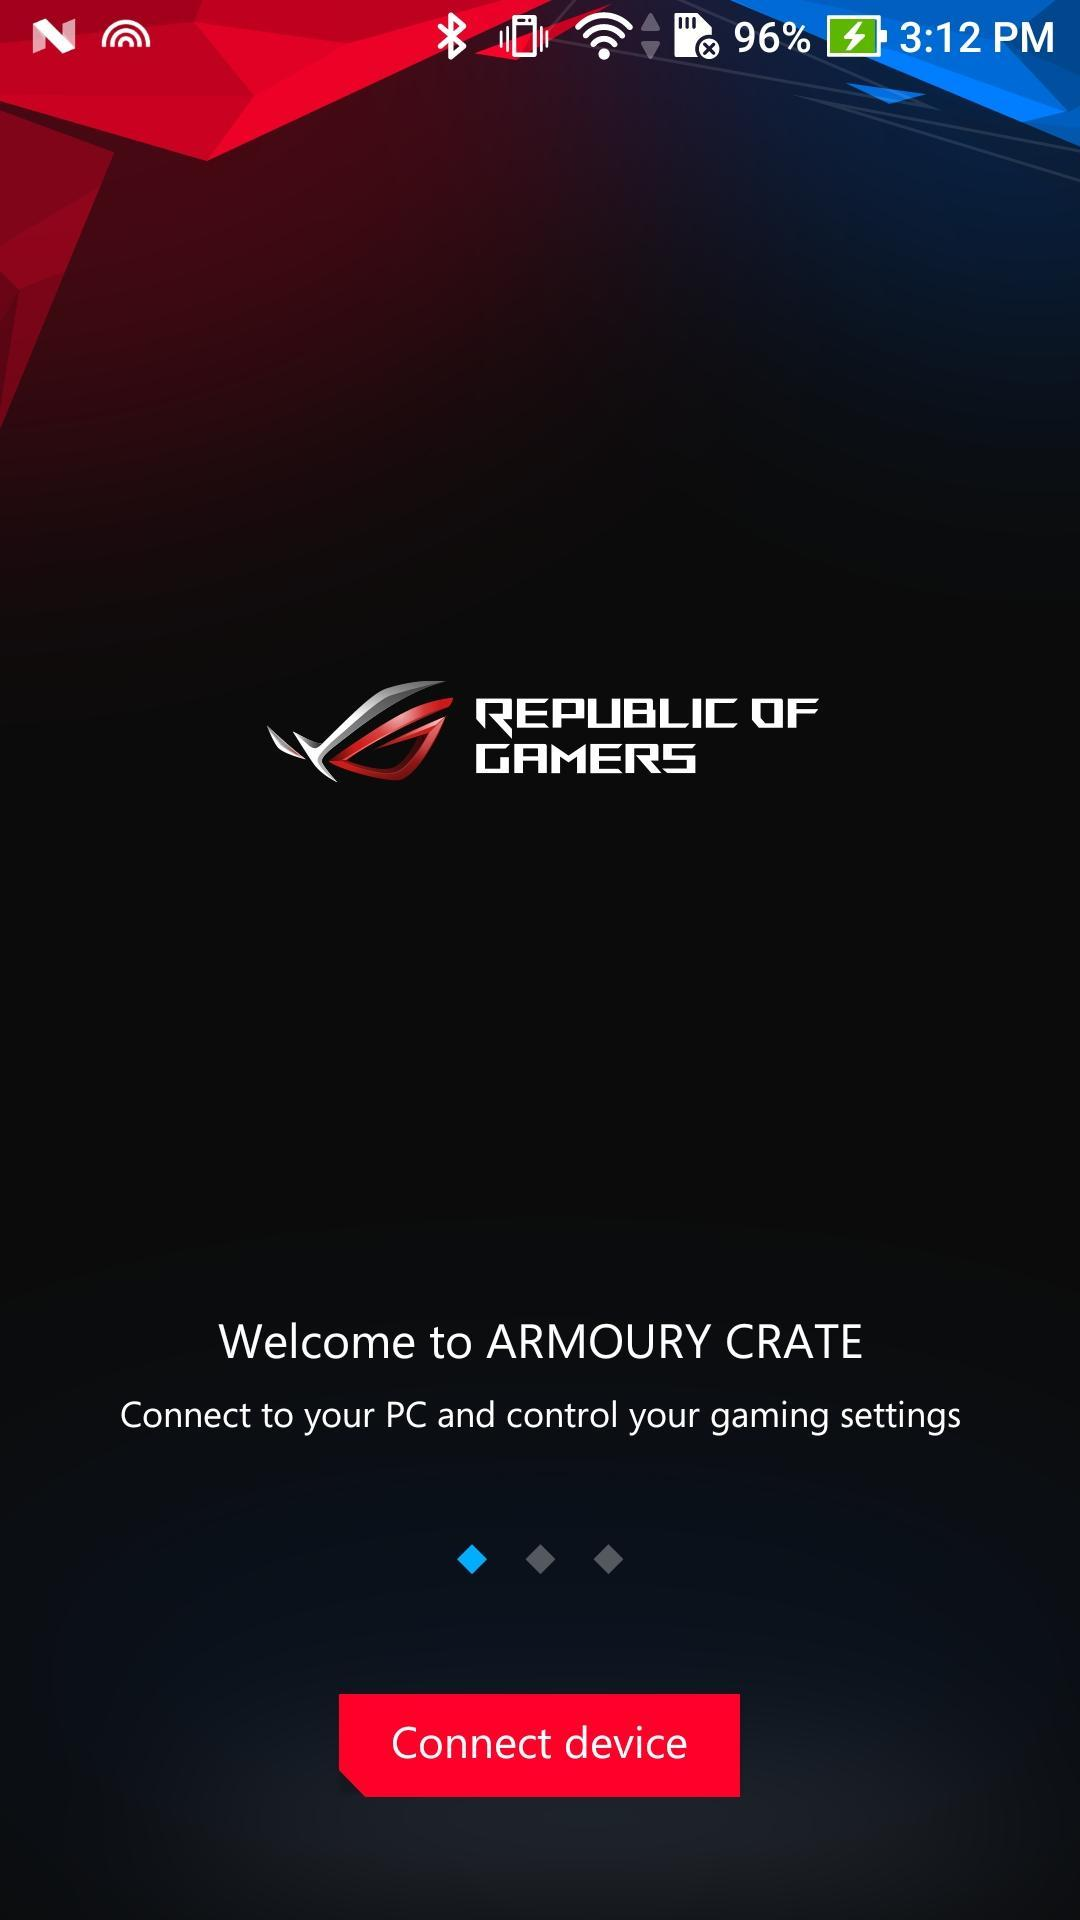 ARMOURY CRATE for Android - APK Download